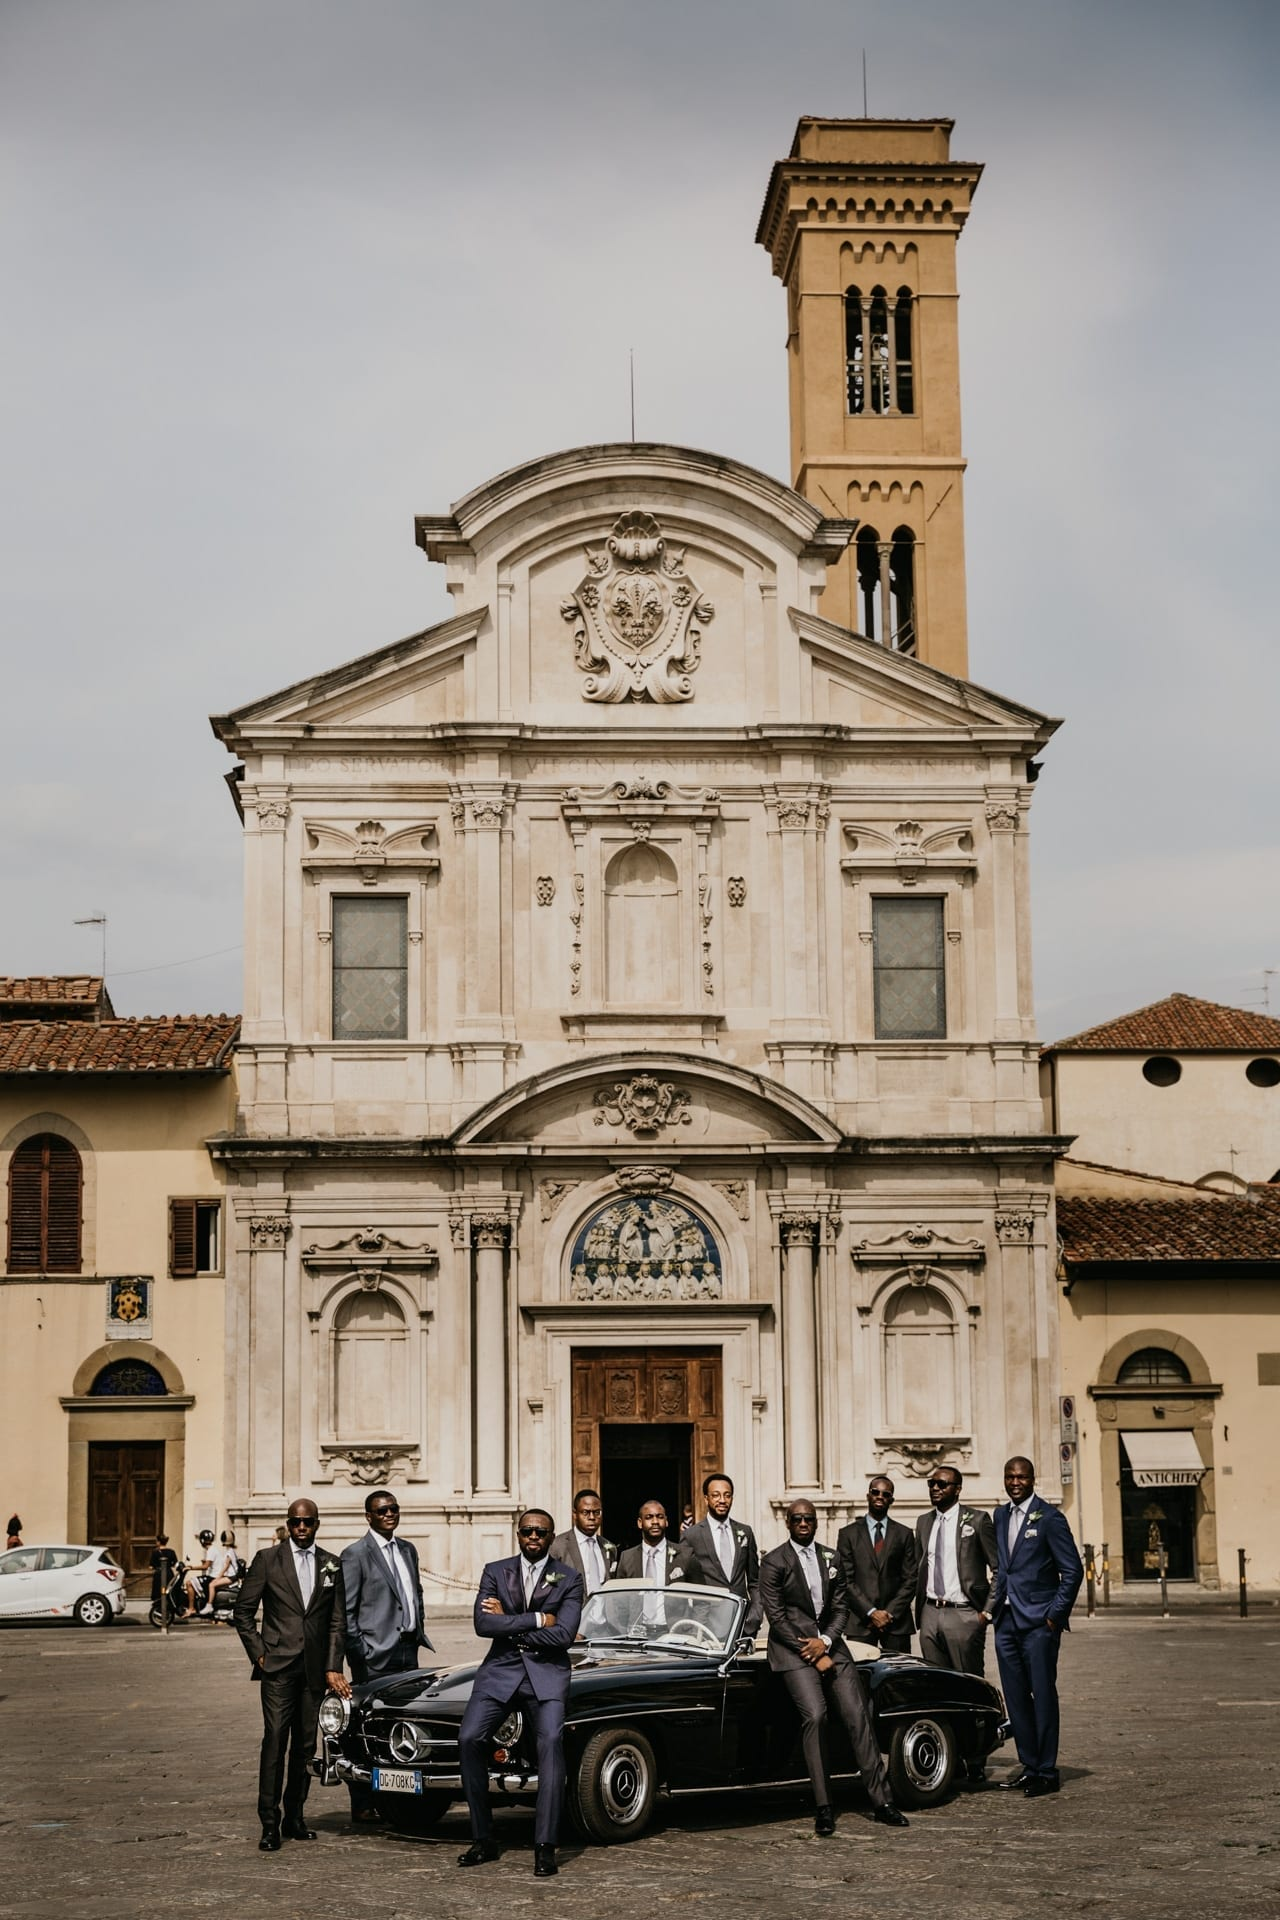 https://righiphotography-com.s3.eu-central-1.amazonaws.com/wp-content/uploads/2020/02/02183322/Weddin-Photo-Classic-Style-Studio-Fotografico-Righi-RIGHI-92.jpg